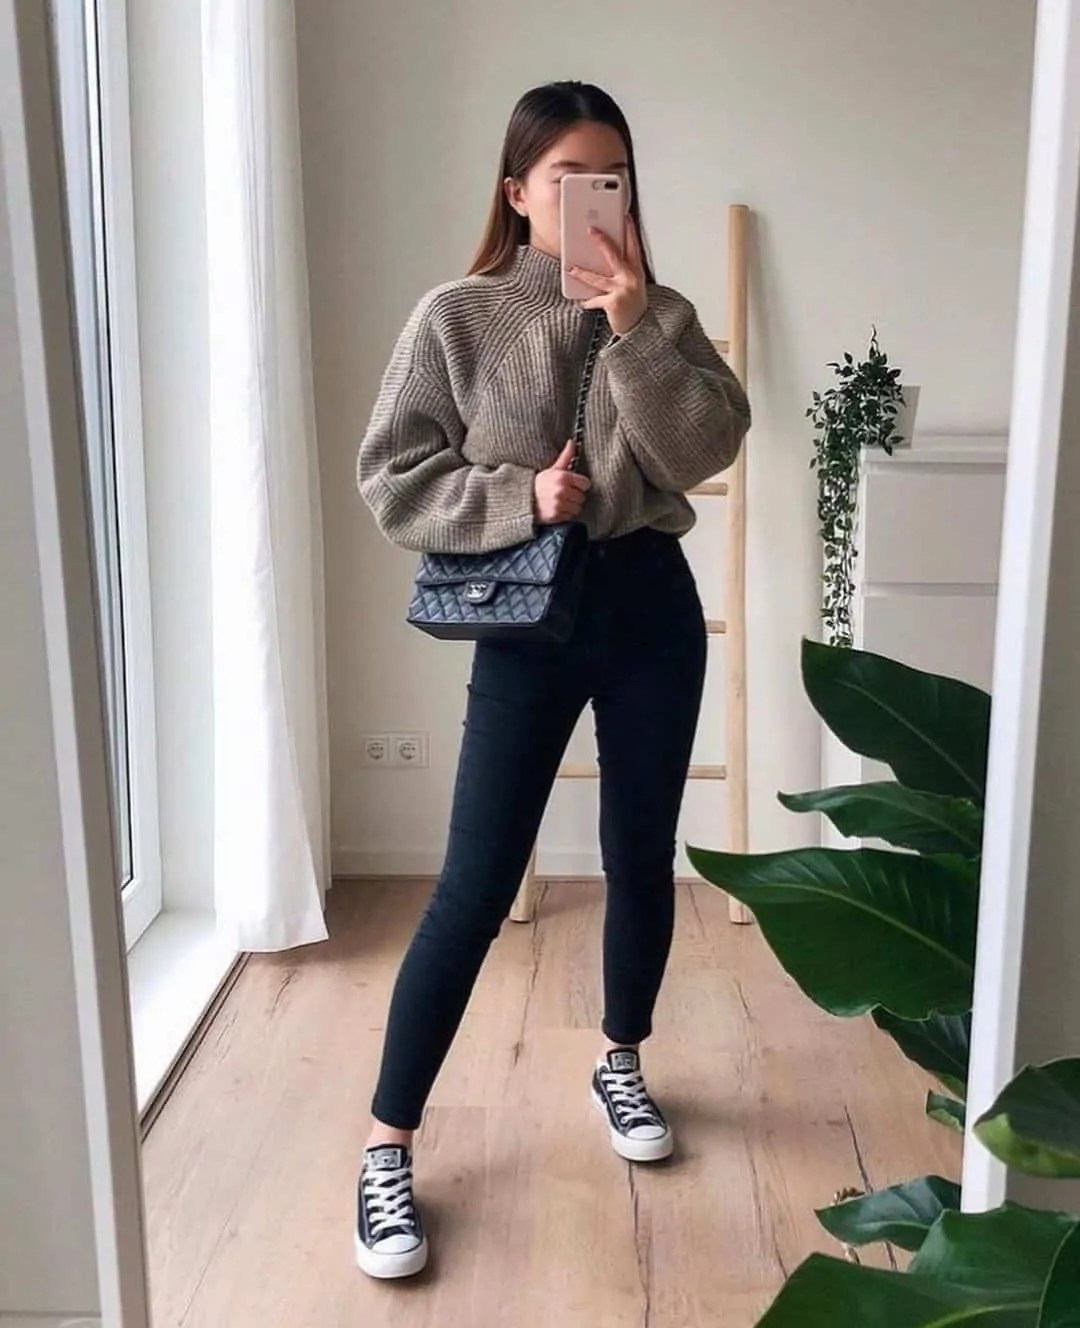 100+ fashion inspo outfits that you have to see no matter what your style is 107